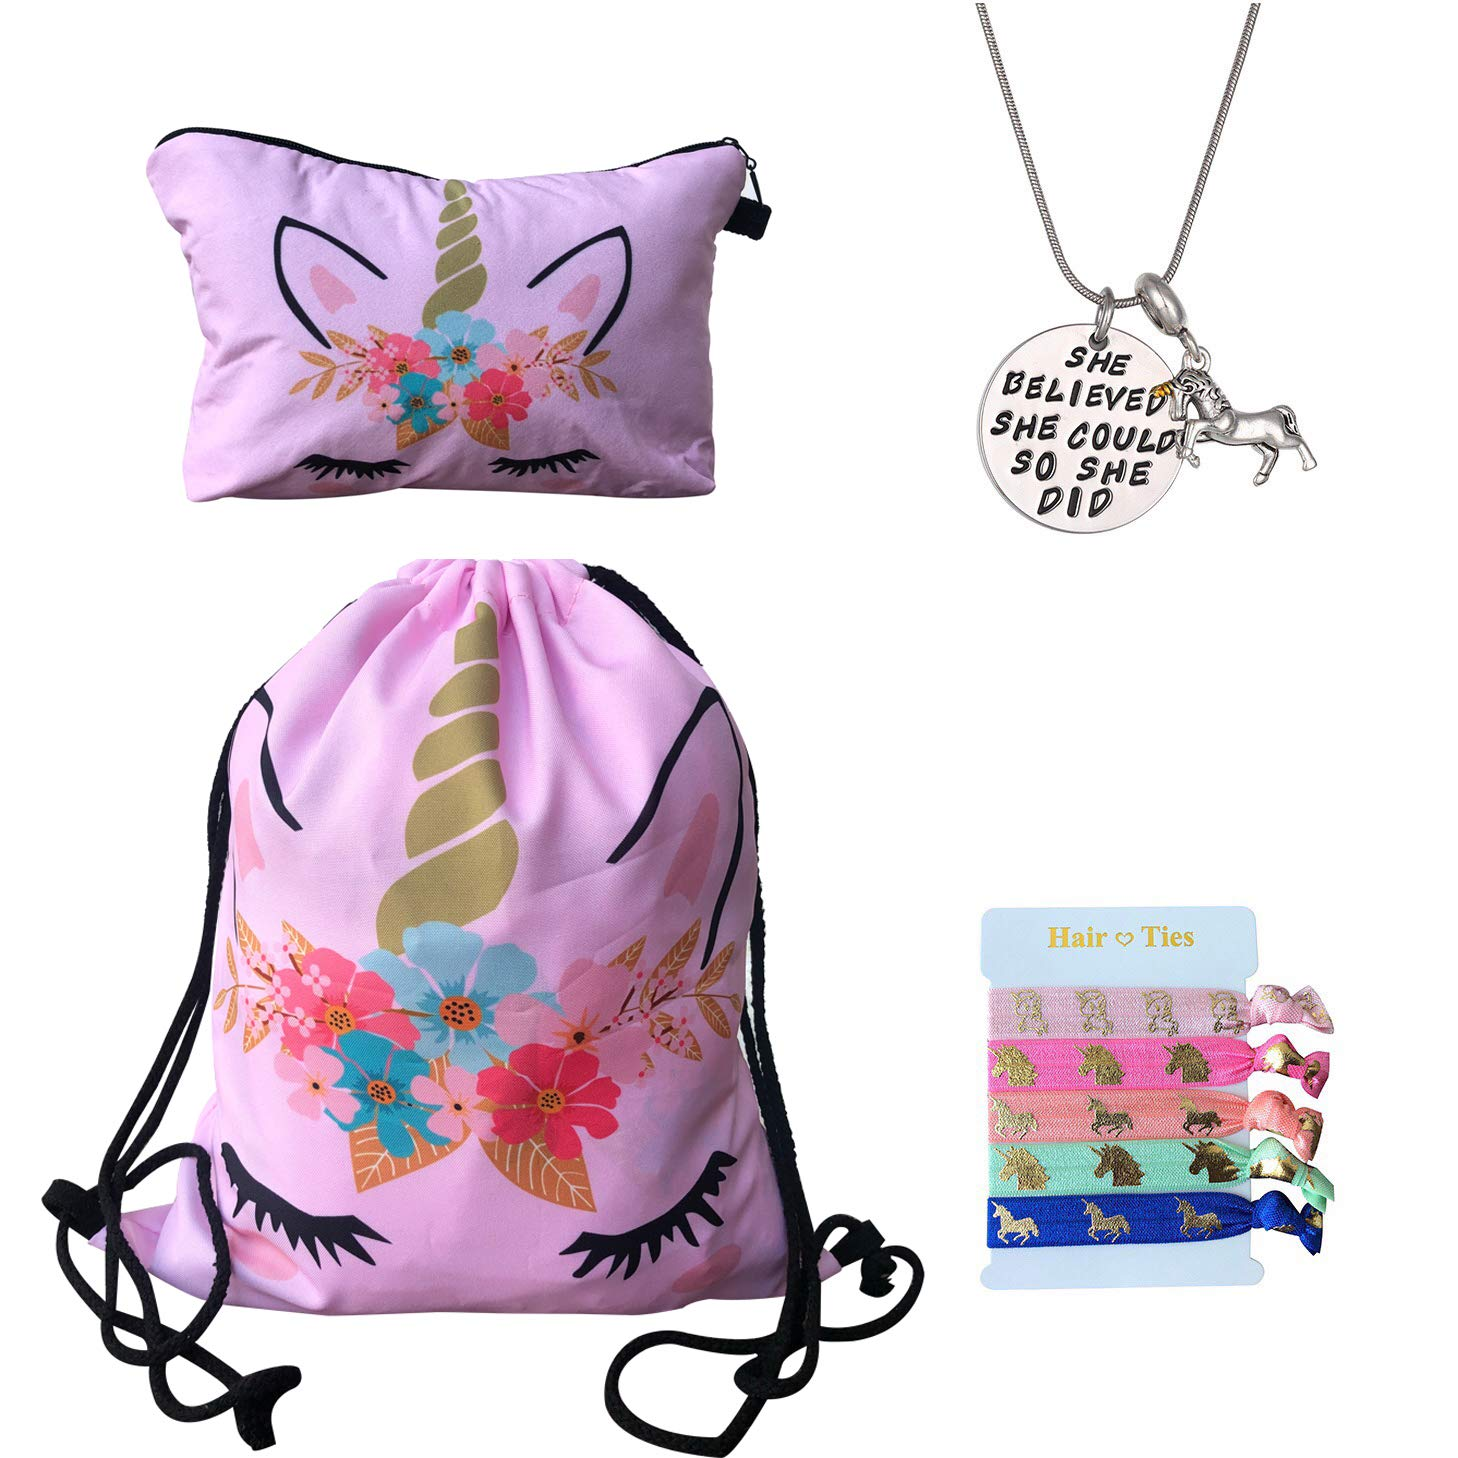 Unicorn Gifts for Girls 4 Pack - Unicorn Drawstring Backpack/Makeup Bag/Inspirational Necklace/Hair Ties W.H. DuJour